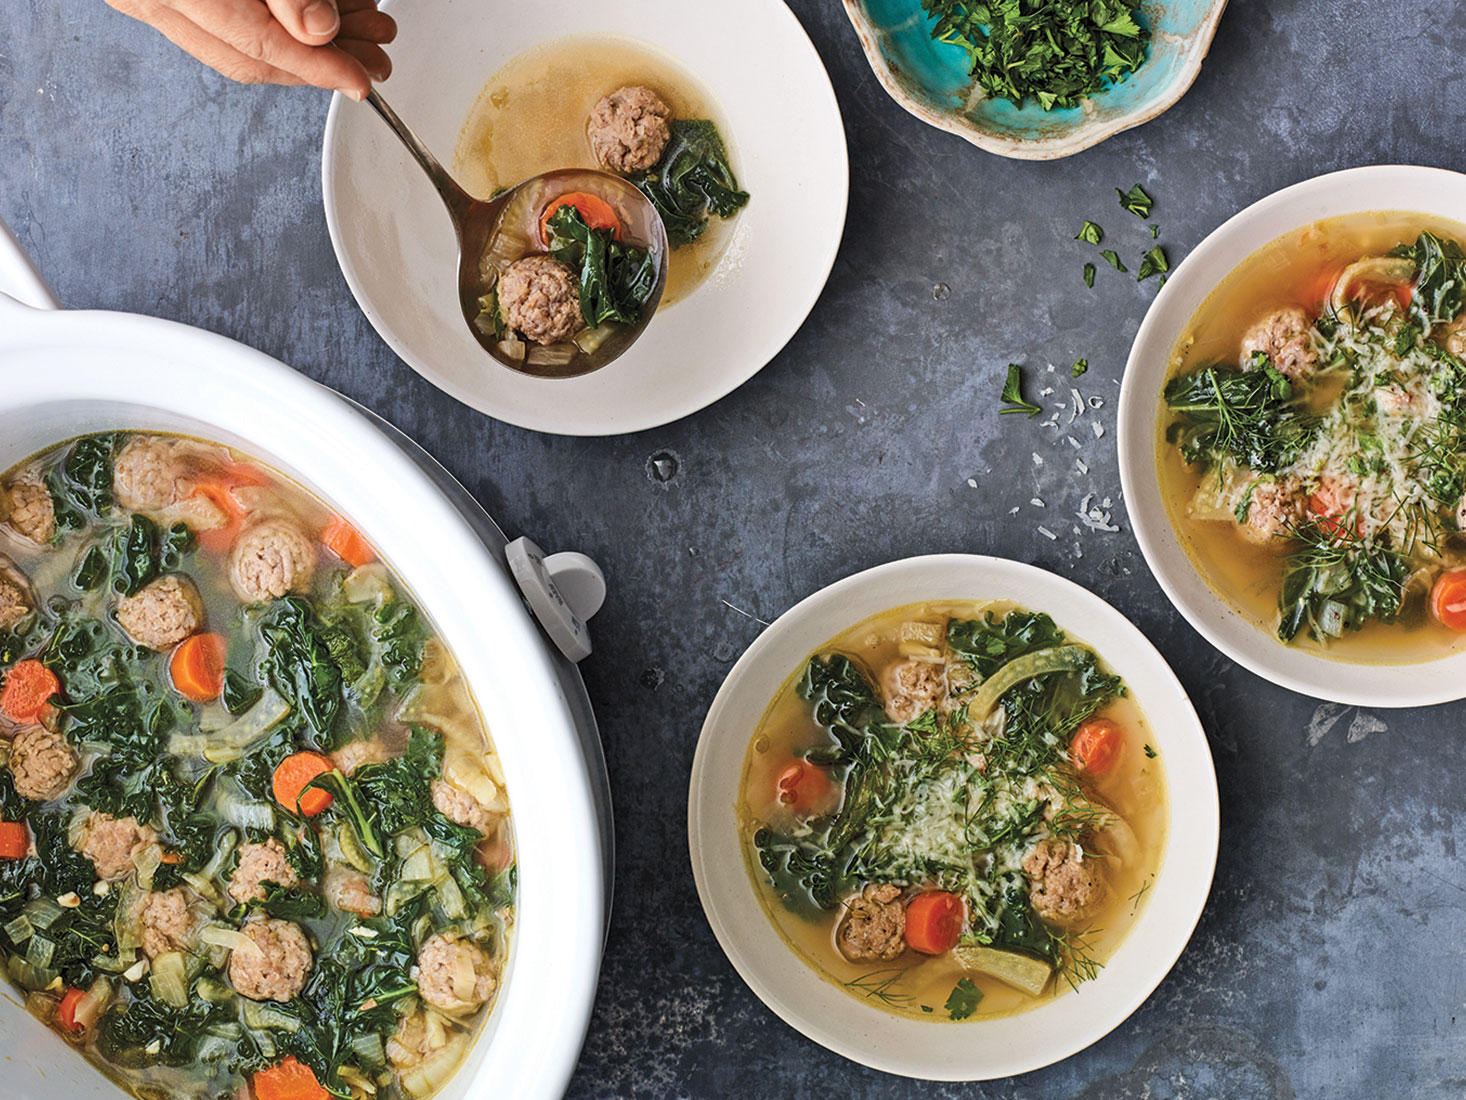 Italian Wedding Soup with Sausage Meatballs and Kale